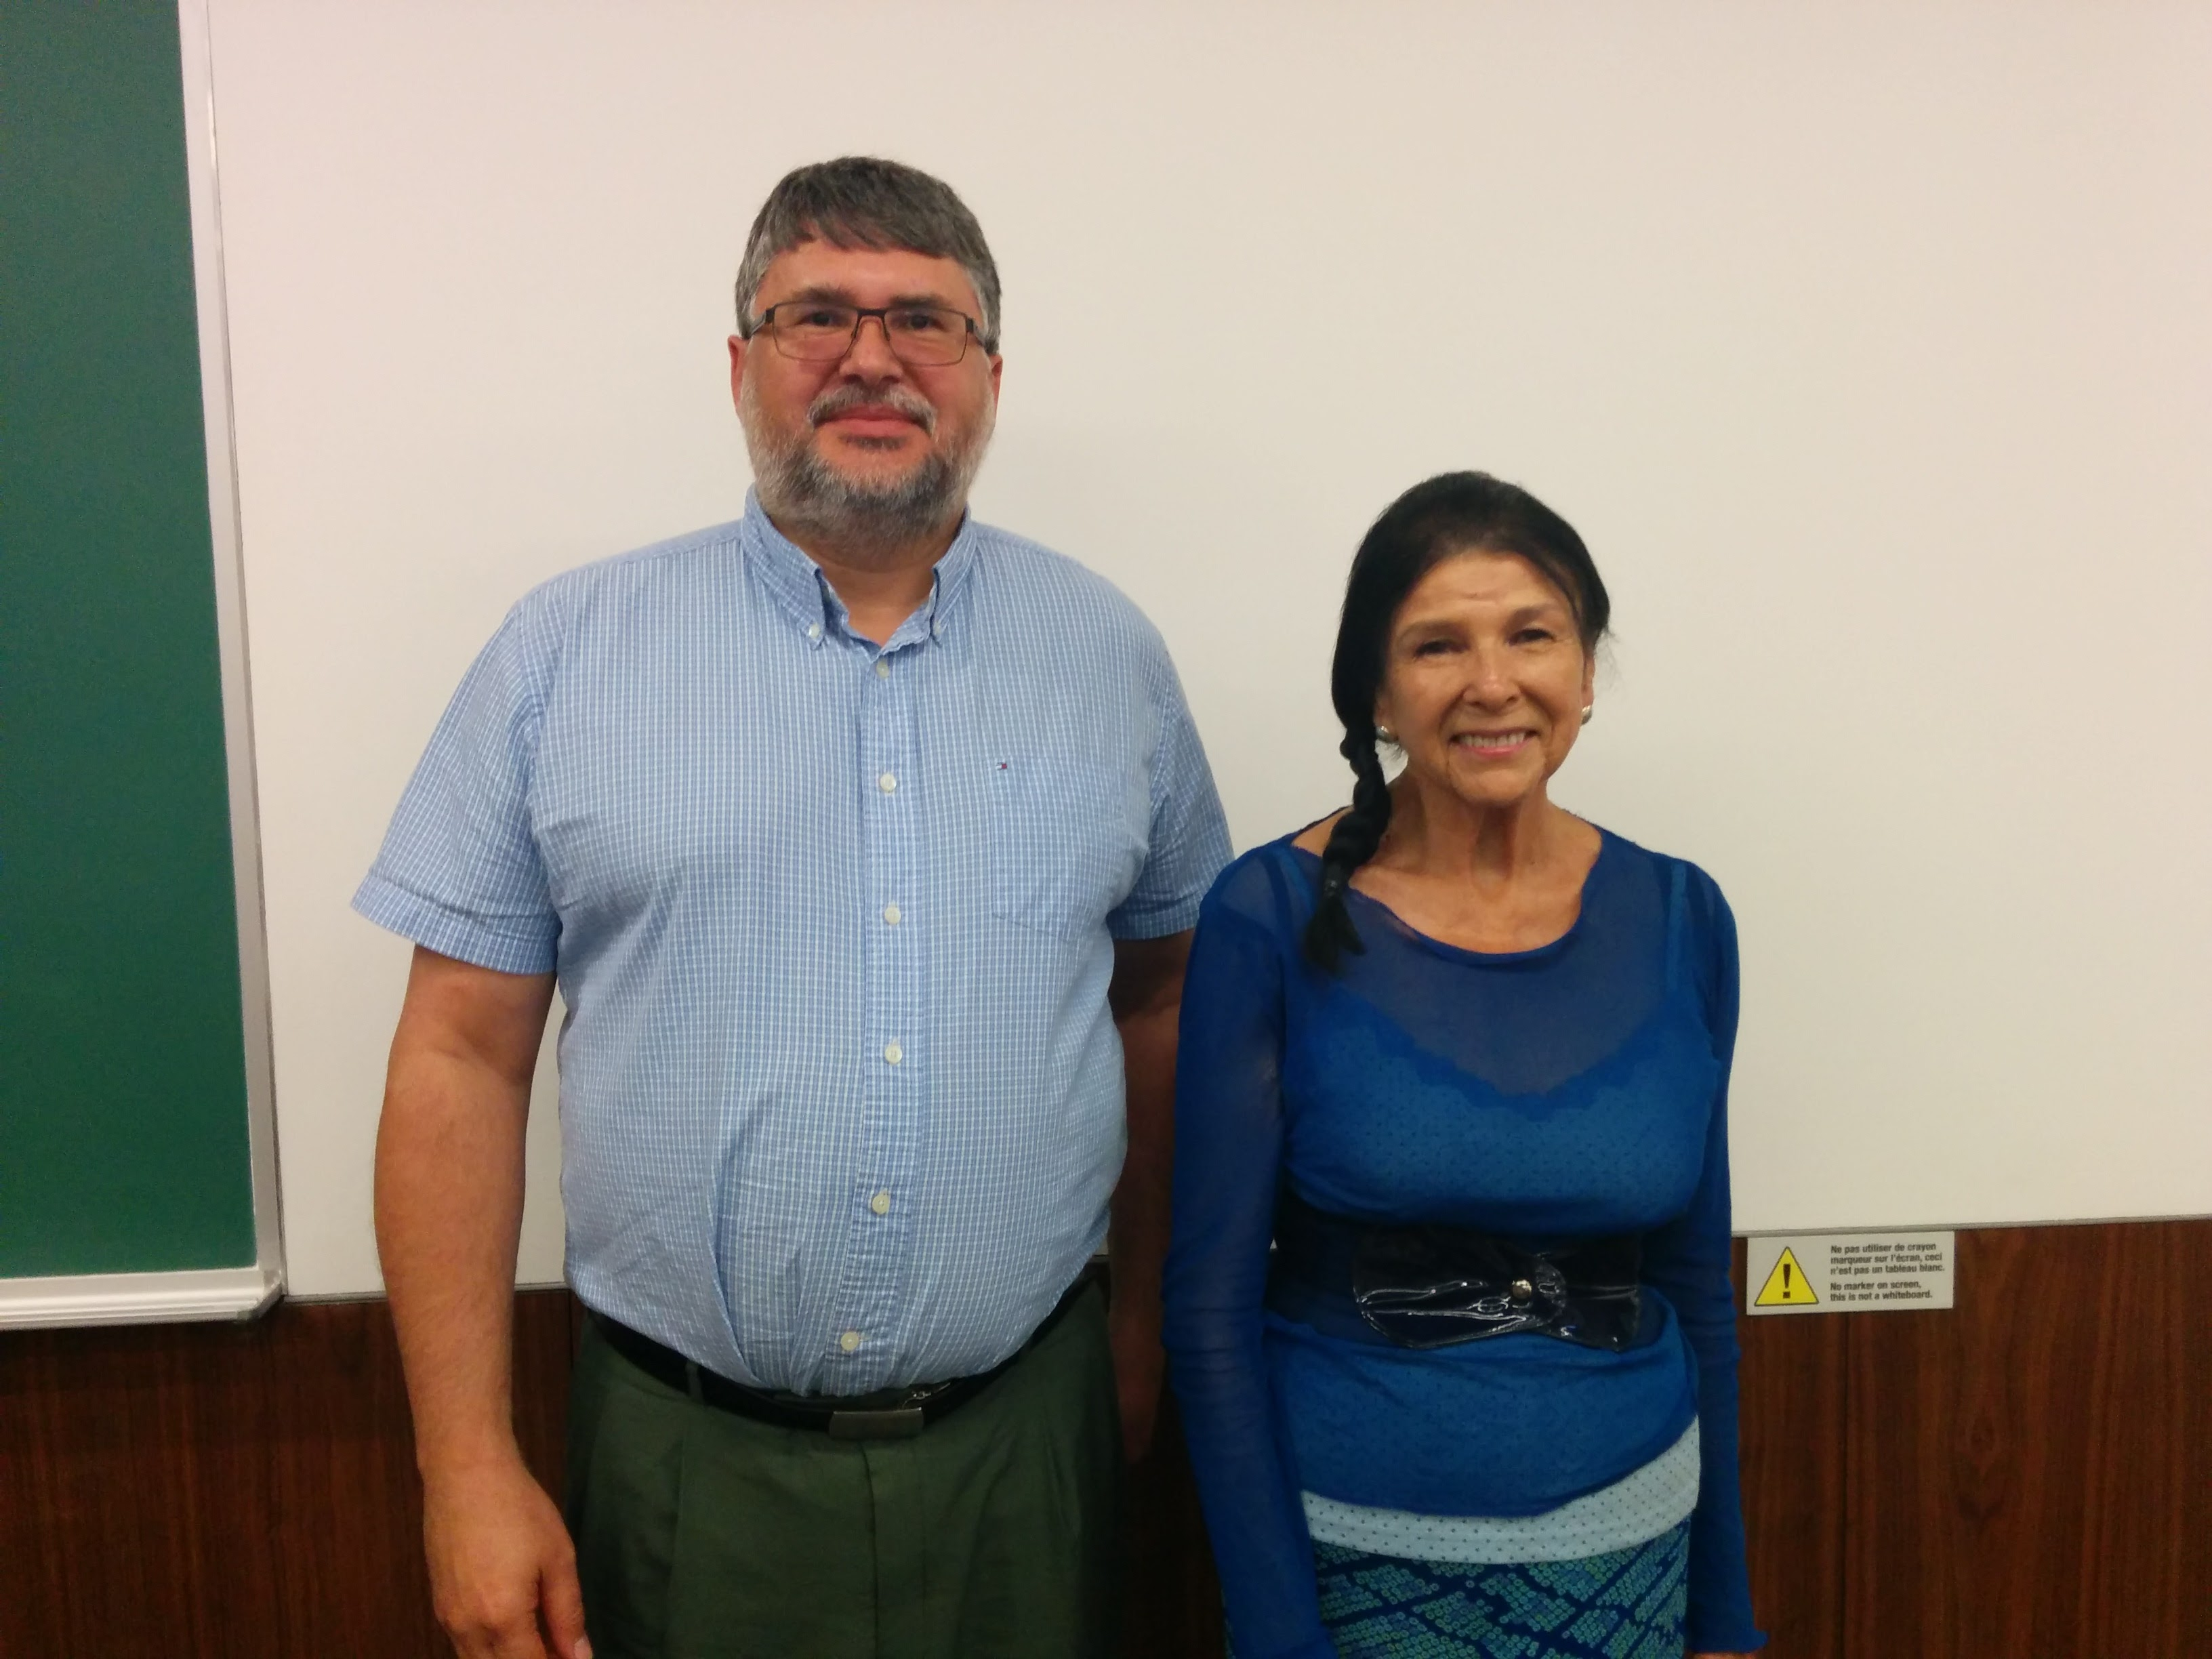 Larry Chartrand & Alanis Obomsawin